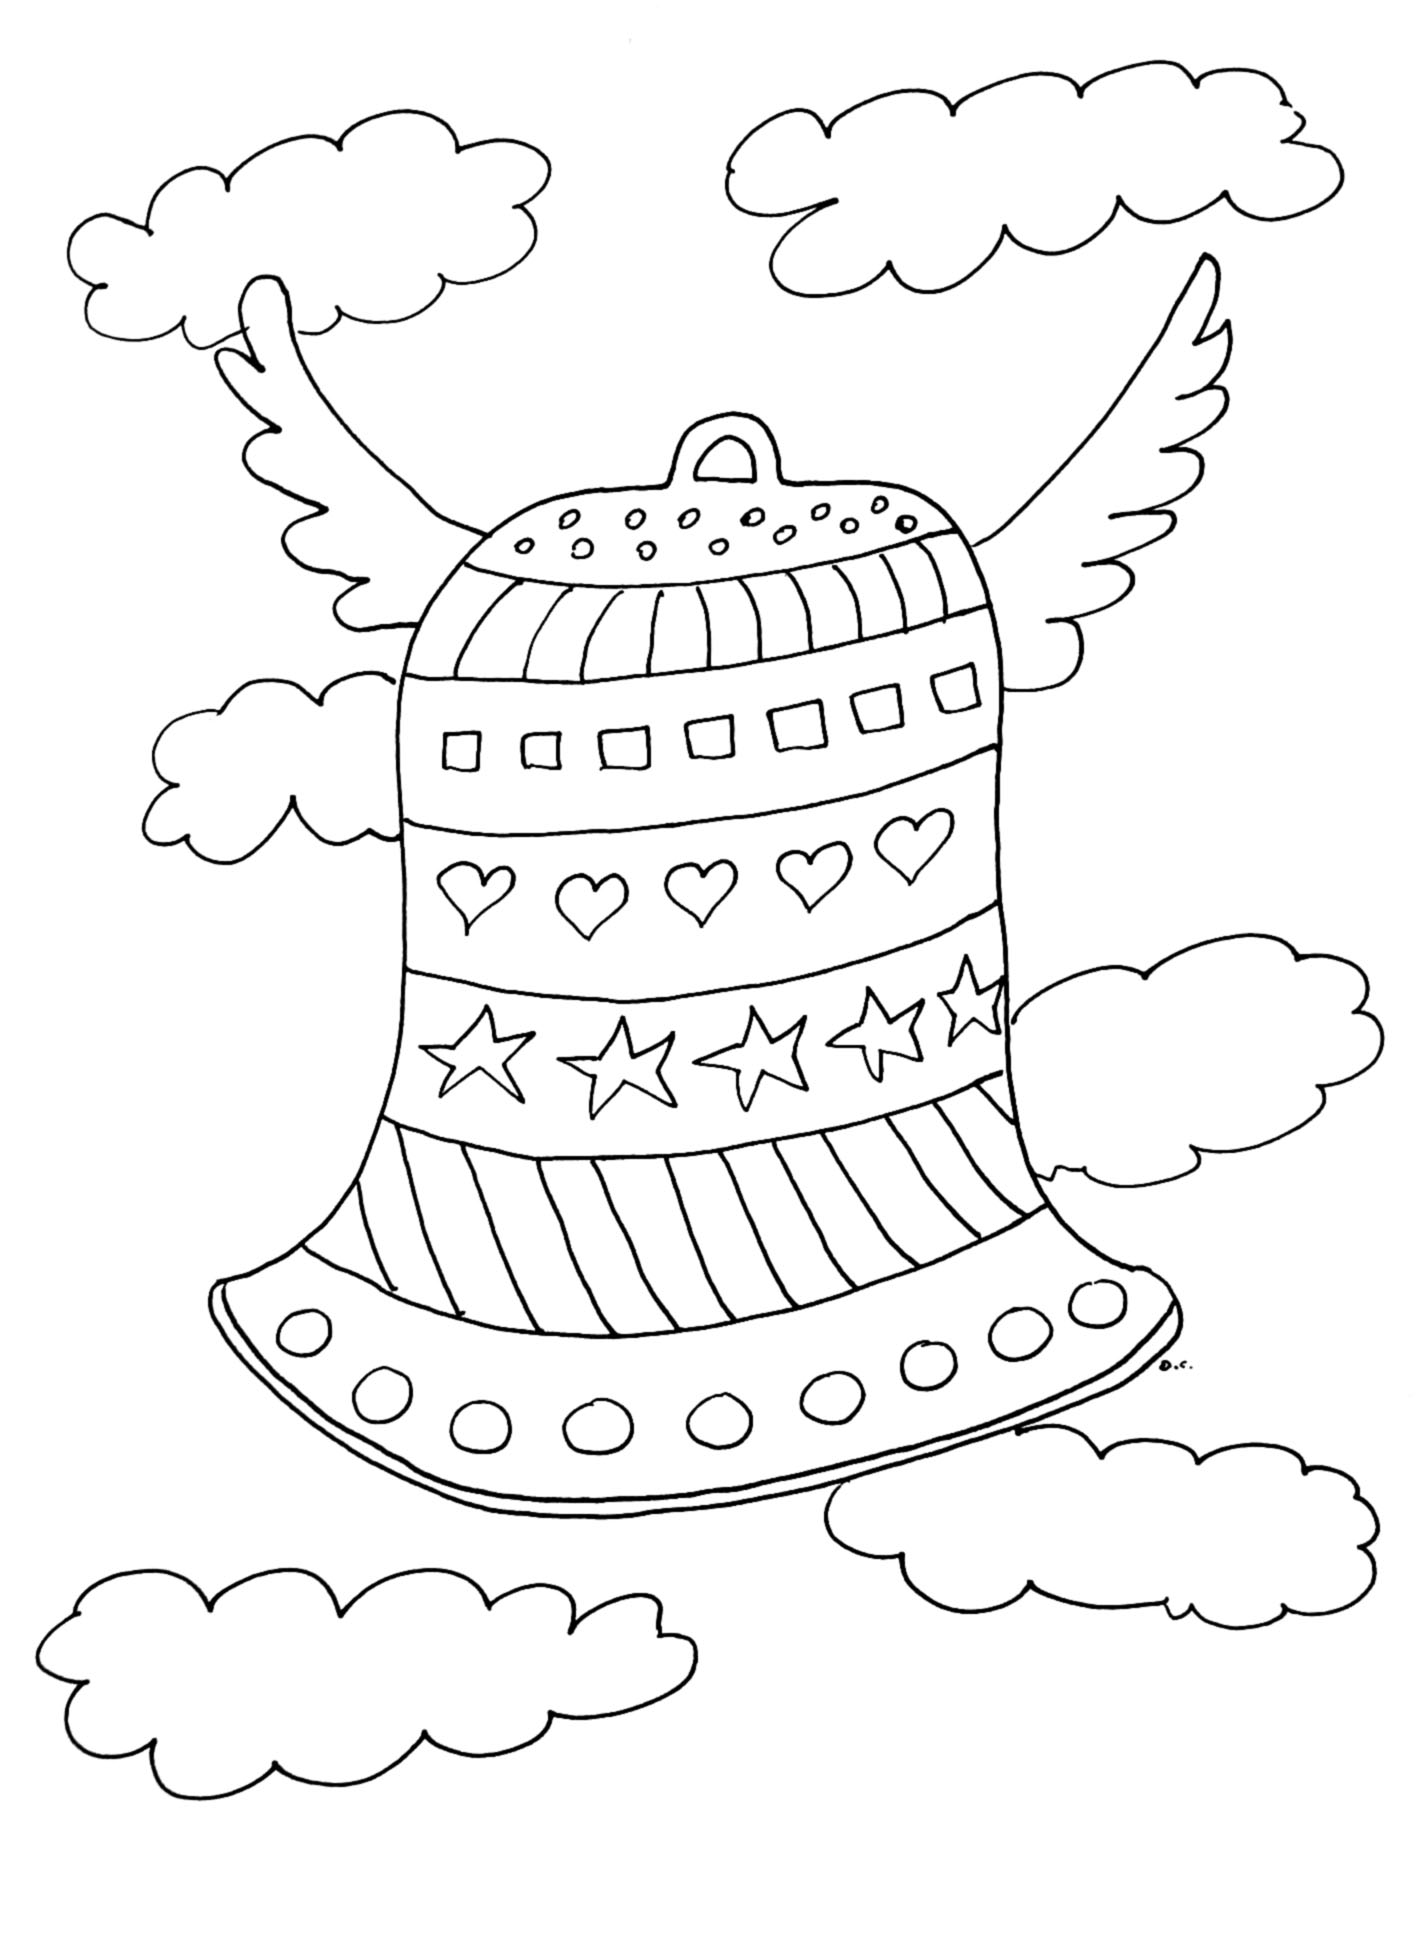 Funny Easter coloring page for kids